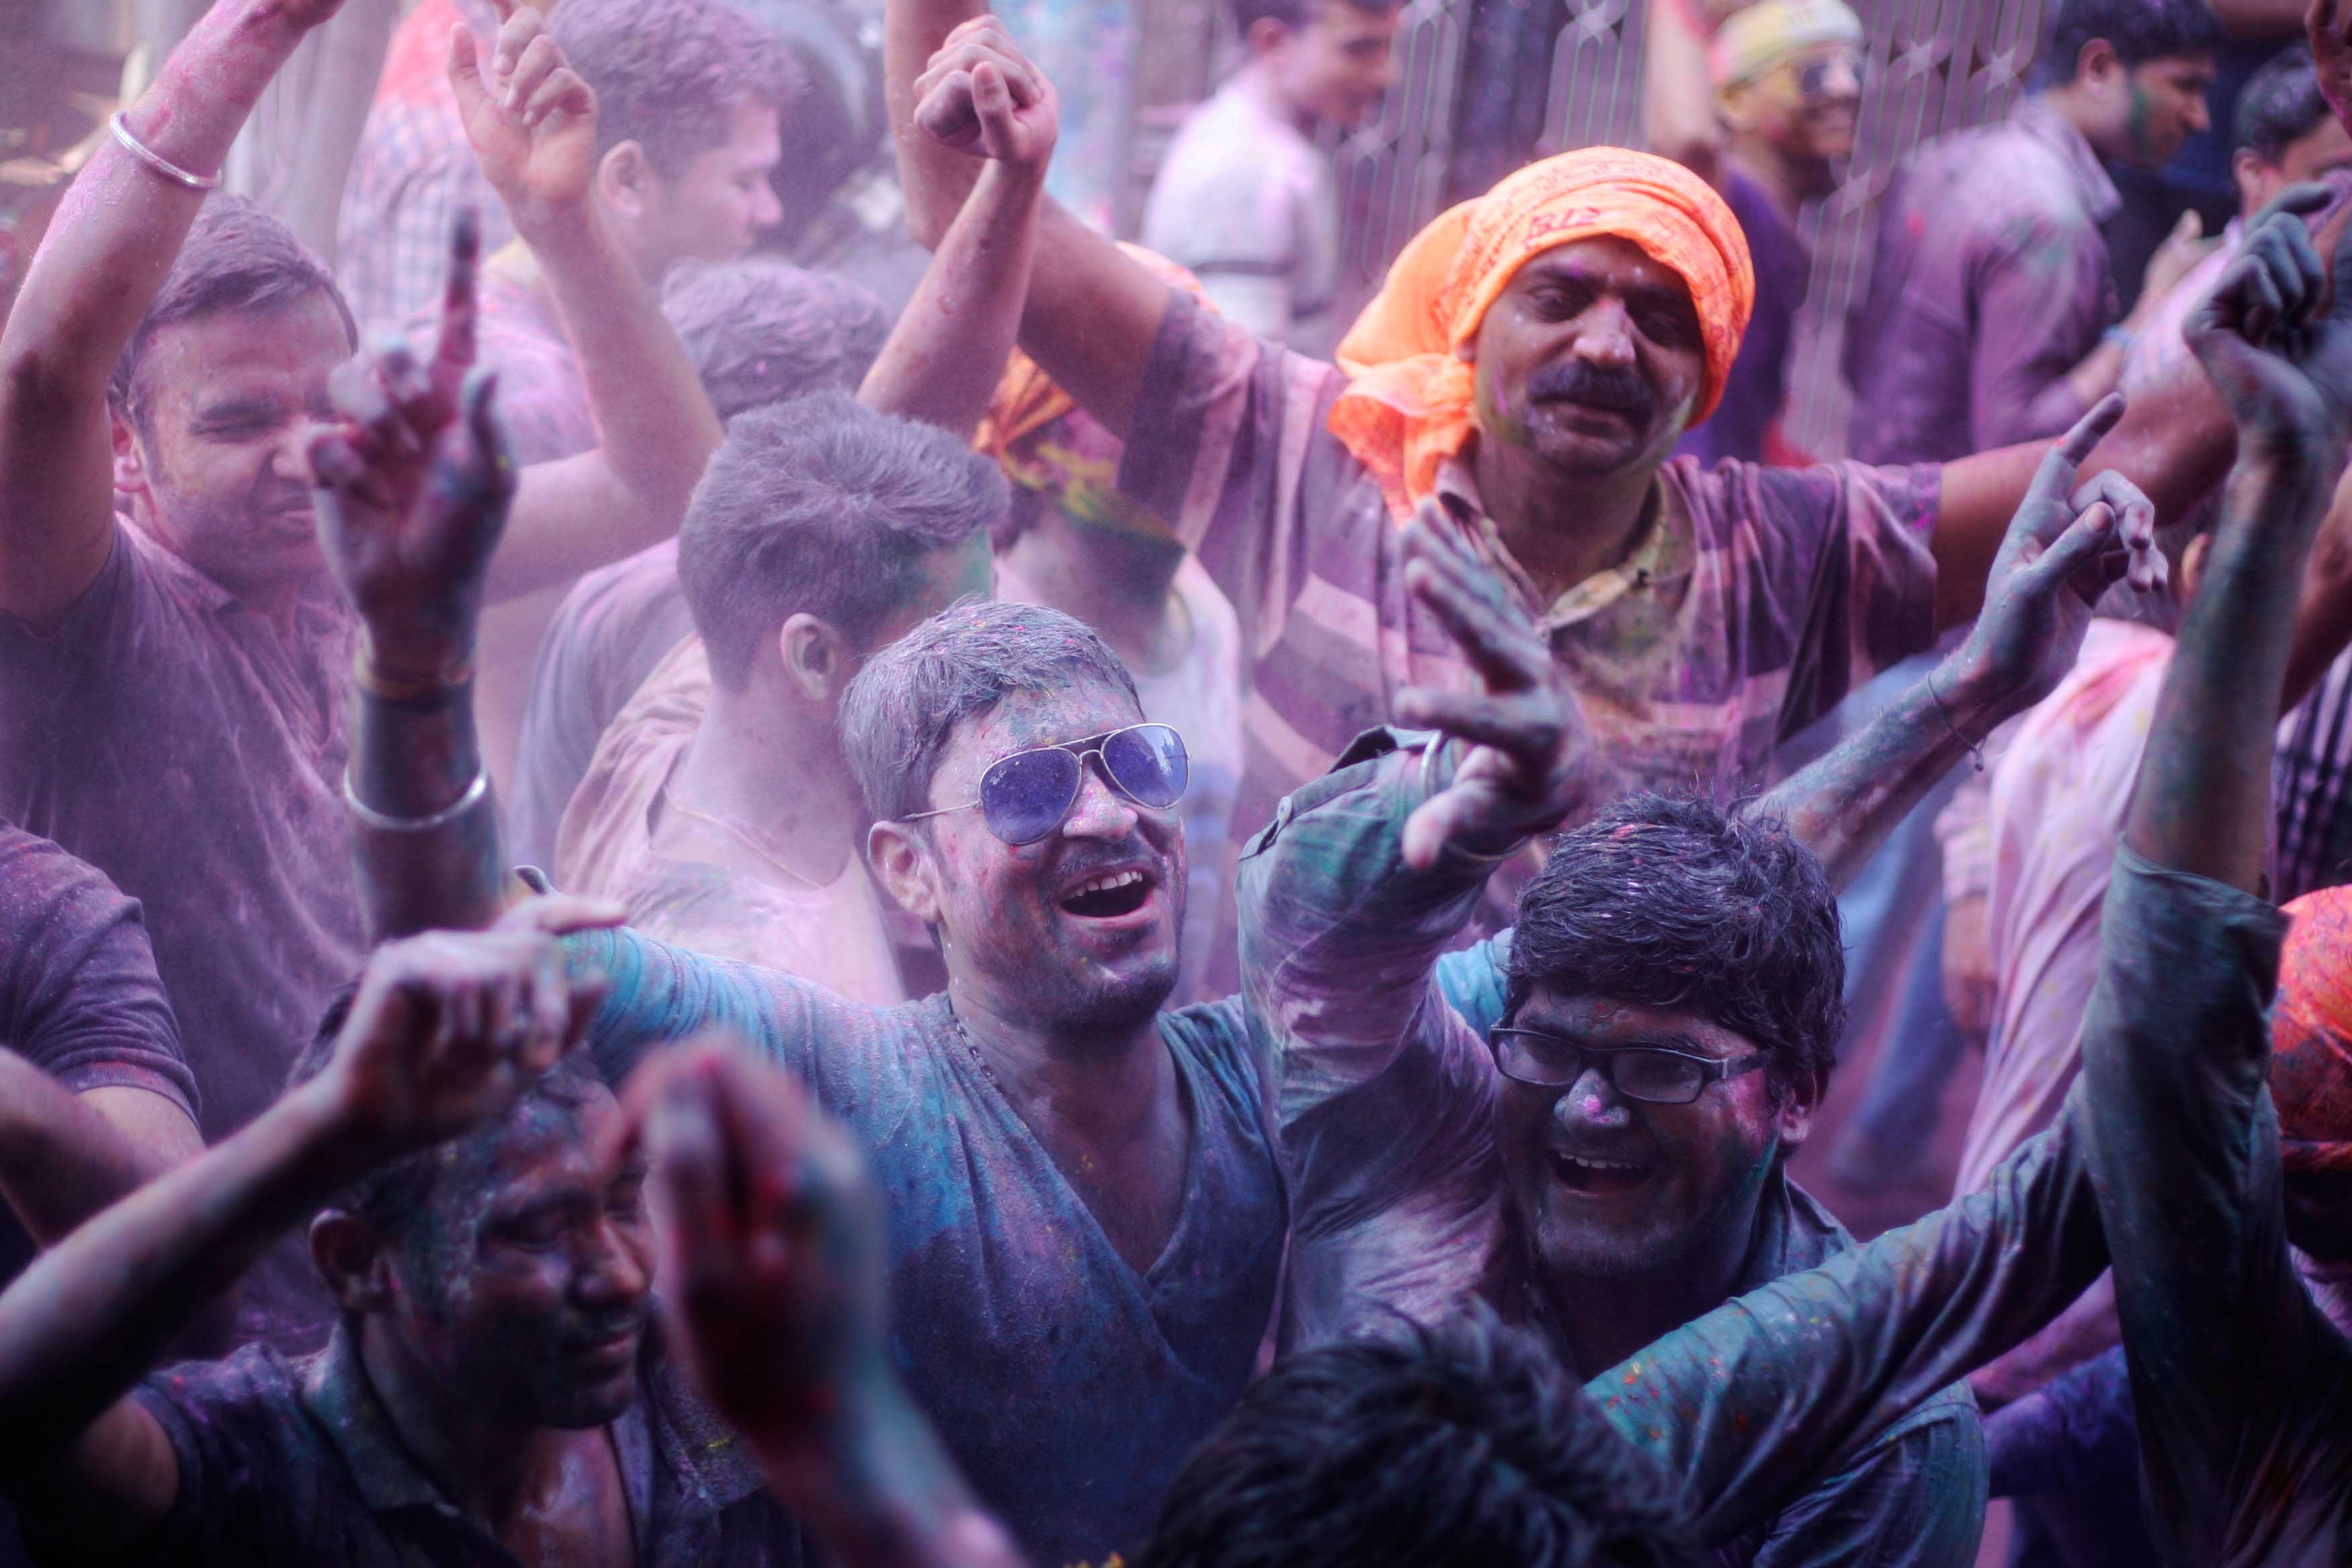 People smeared in colours celebrate Holi on a street outside the Bankey Bihari temple, on March 6, 2015 in Vrindavan, India. Photo by Burhaan Kinu/Hindustan Times via Getty Images.